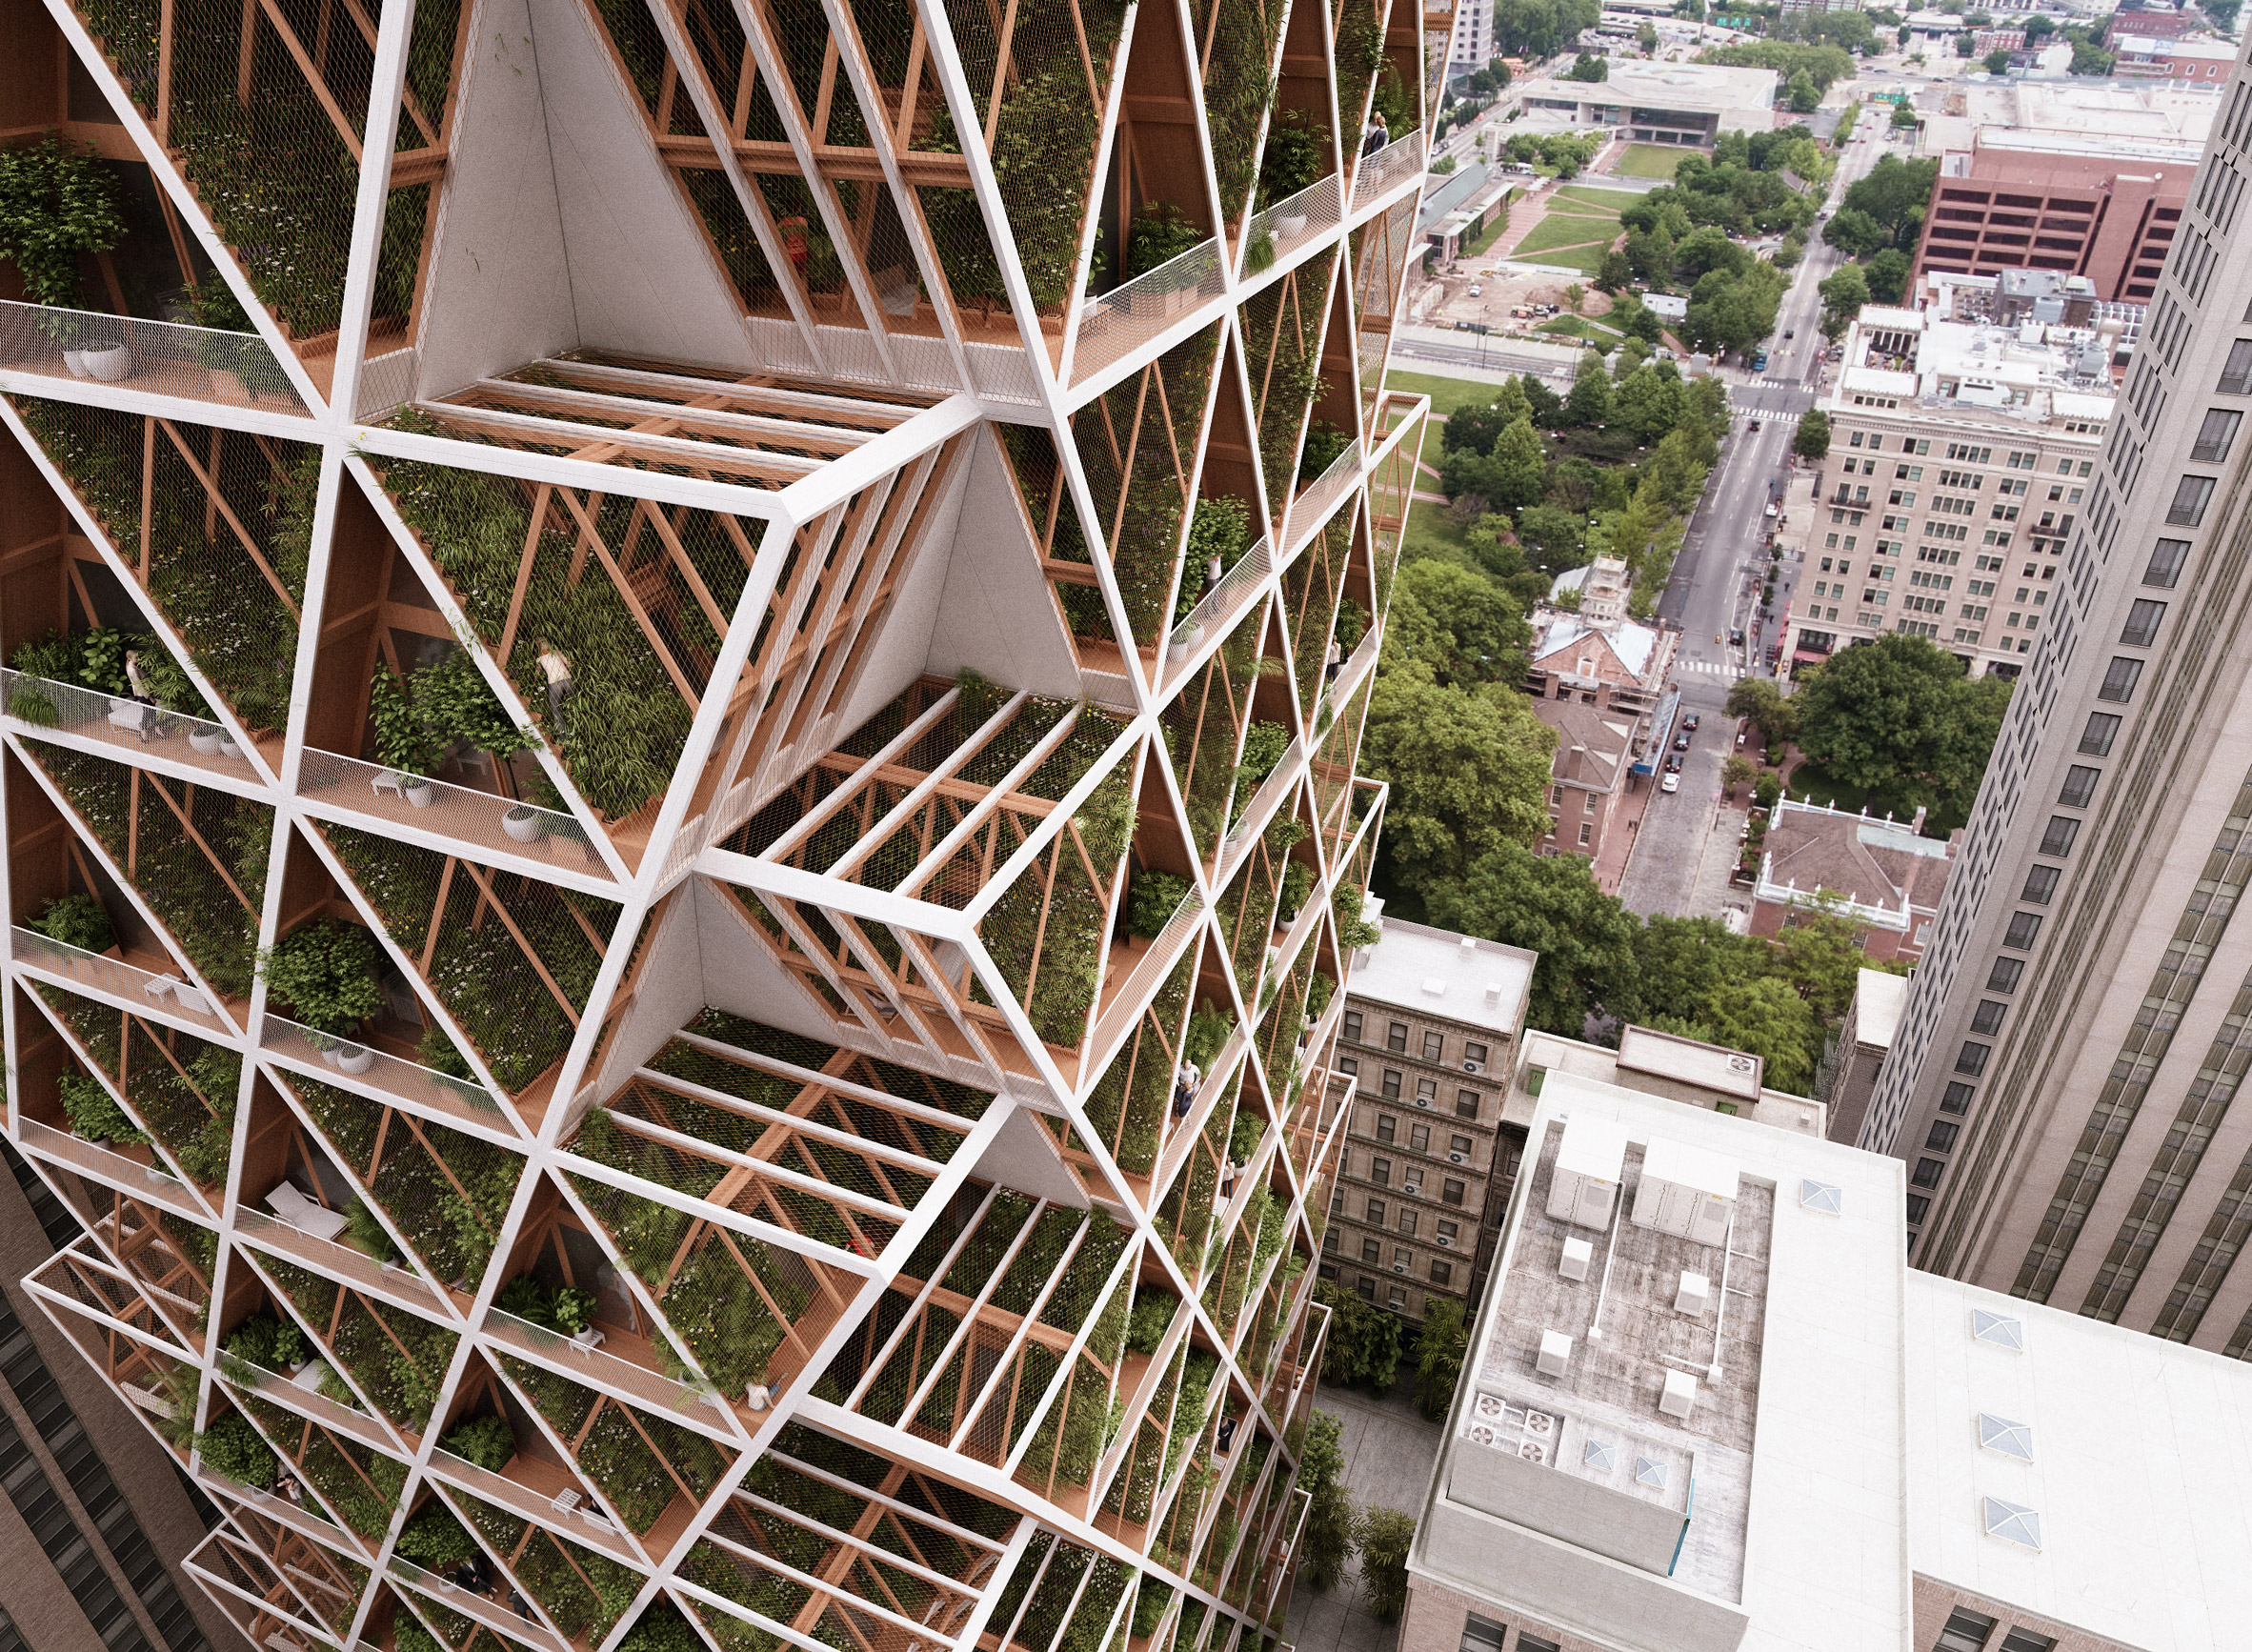 The Farmhouse by Precht combines modular homes with vertical farms